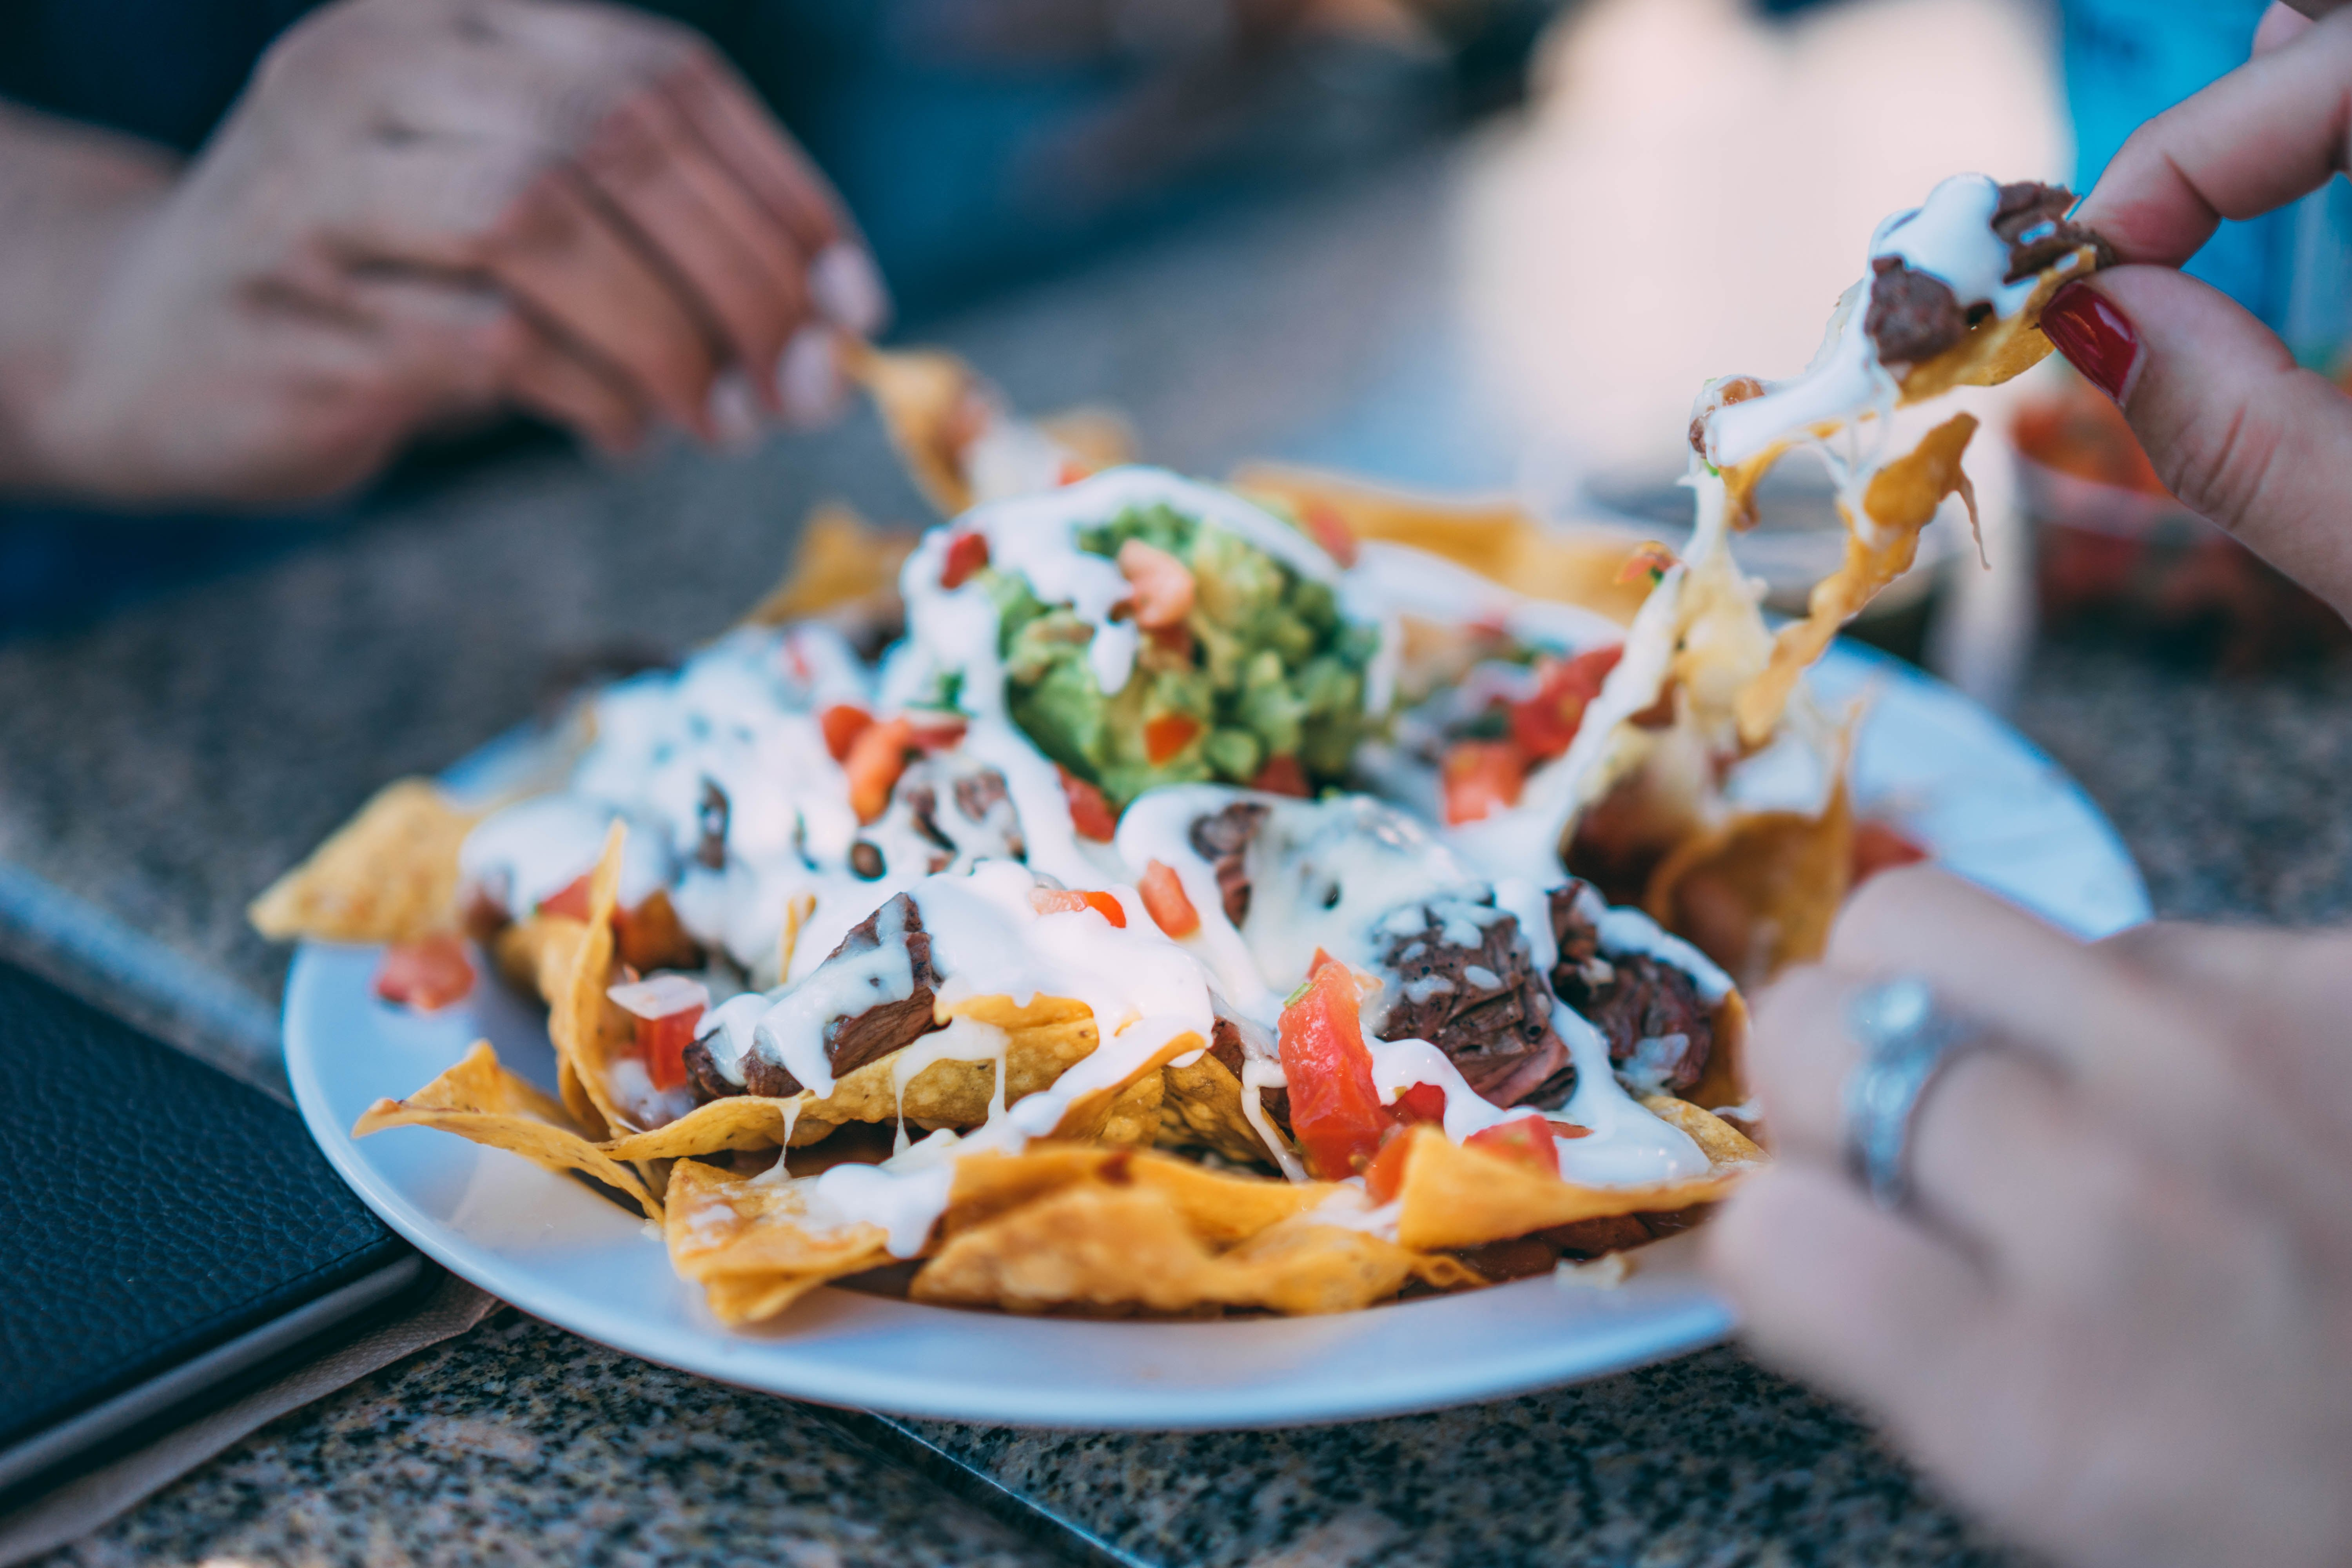 Image of people eating a plate of nachos